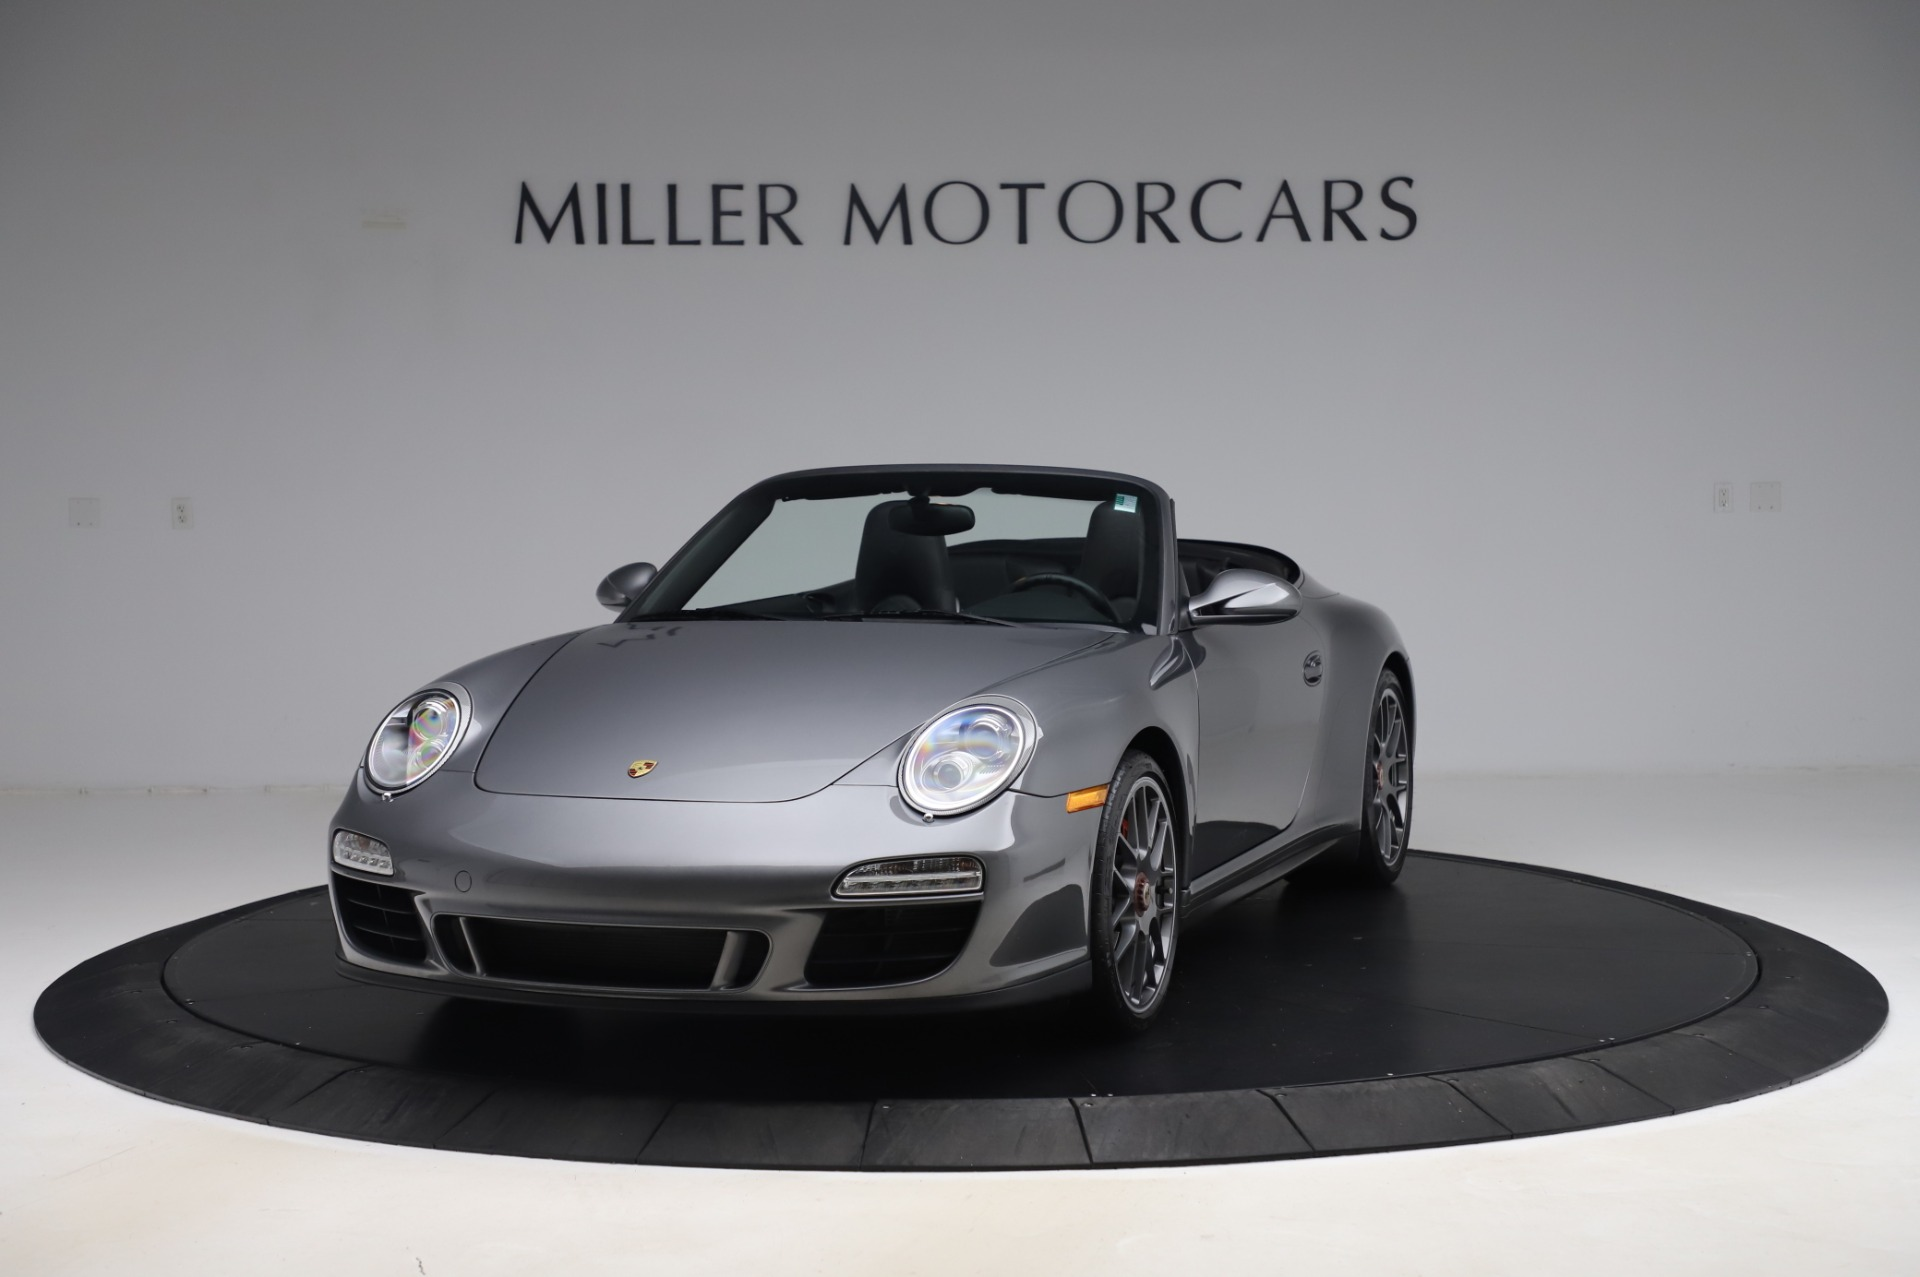 Used 2012 Porsche 911 Carrera 4 GTS for sale $79,900 at Bentley Greenwich in Greenwich CT 06830 1